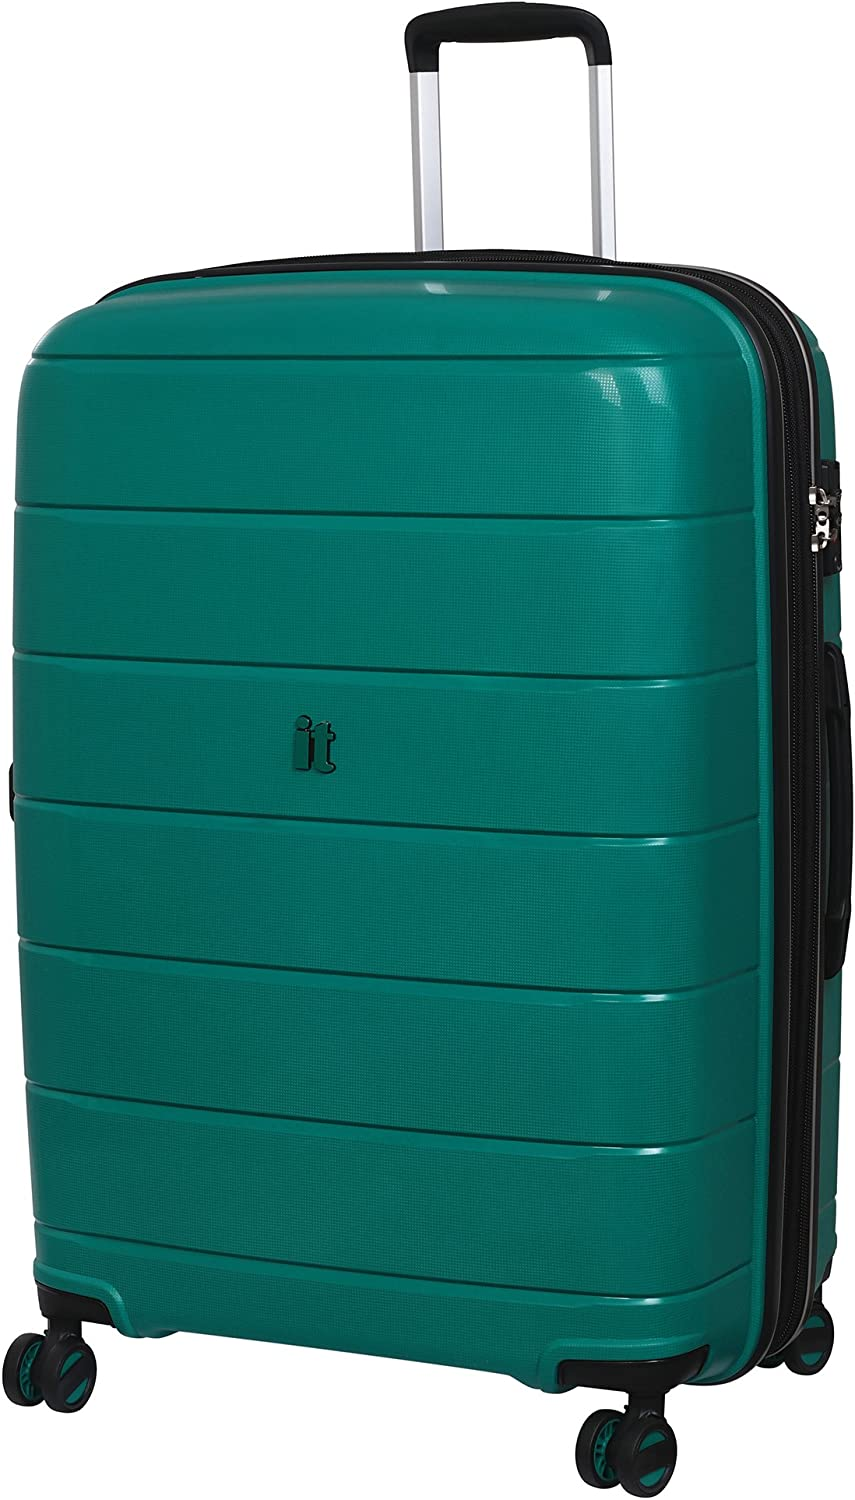 it luggage Asteroid Maleta, 75 cm, 149 Liters, Verde (Pine Green)